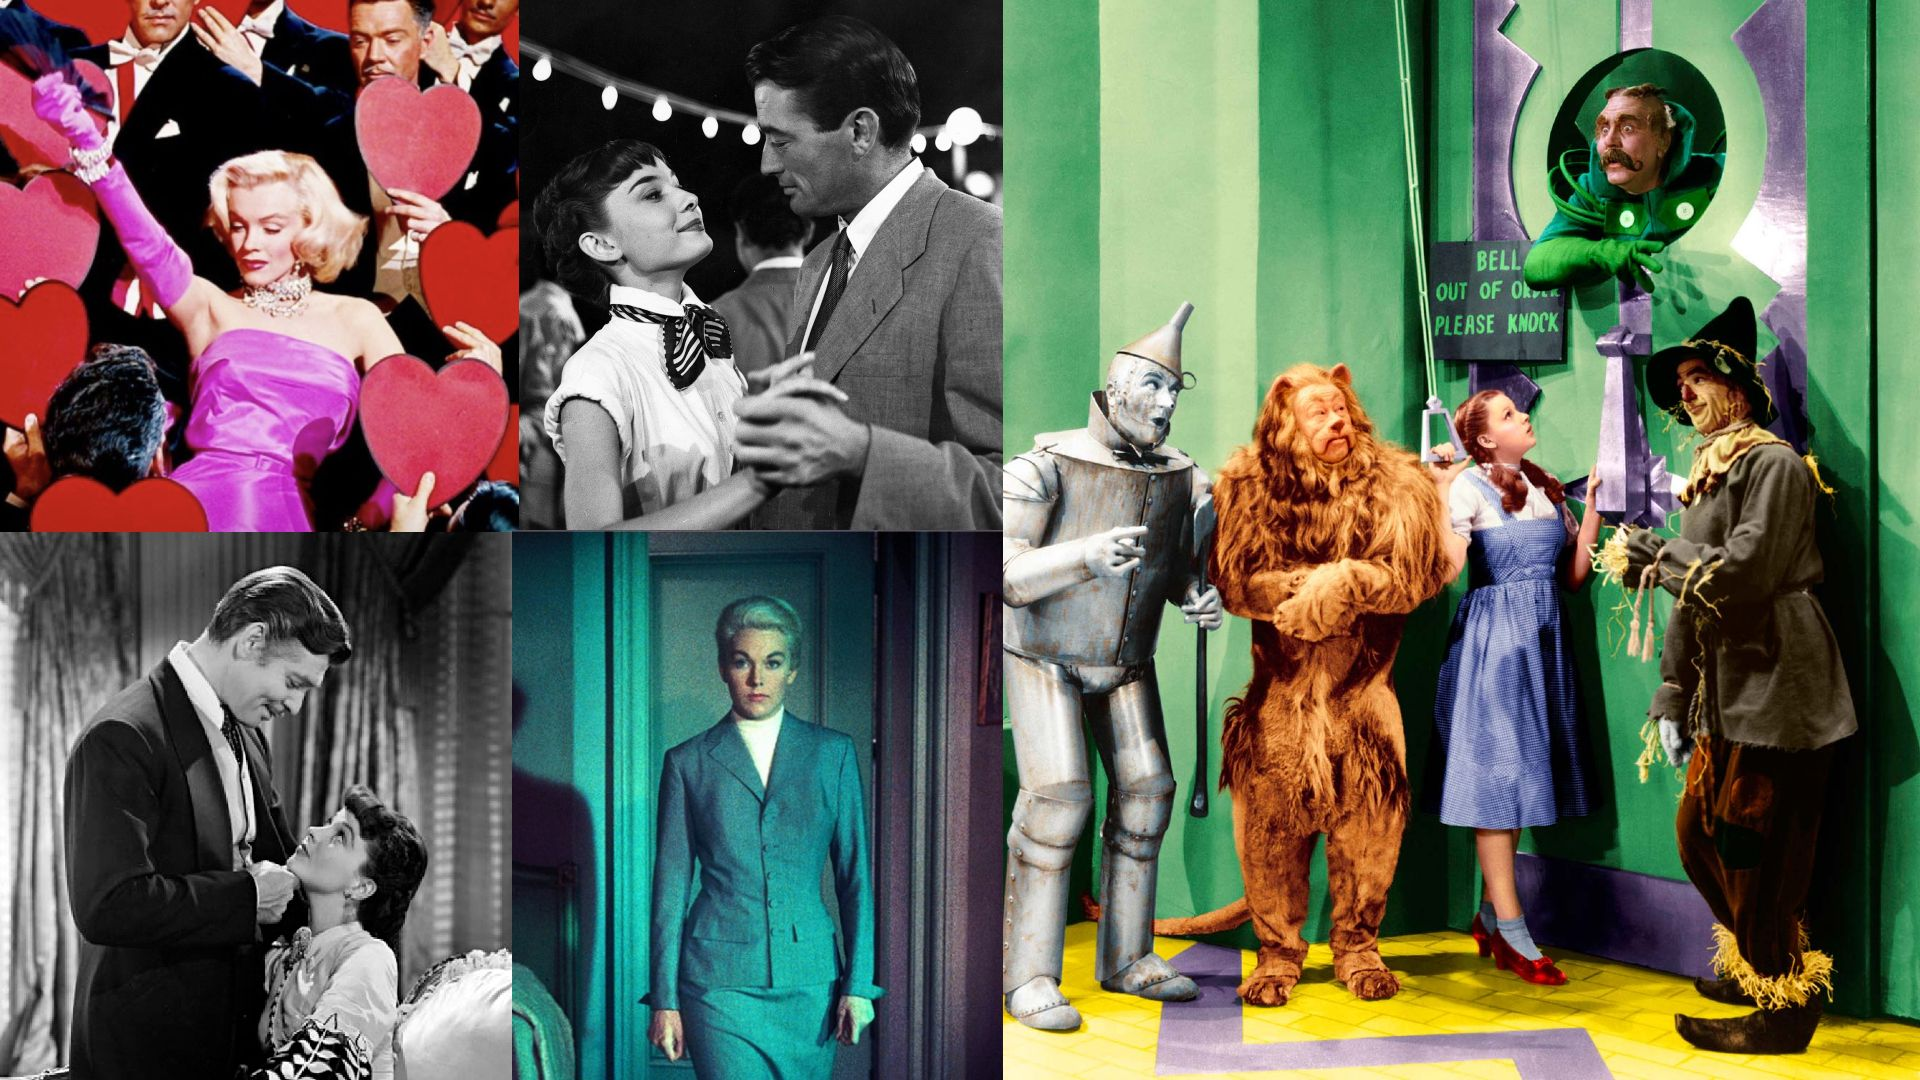 Wizard of Oz, Vertigo, Casablanca, And More: 13 Old Hollywood Movies To Rewatch ASAP